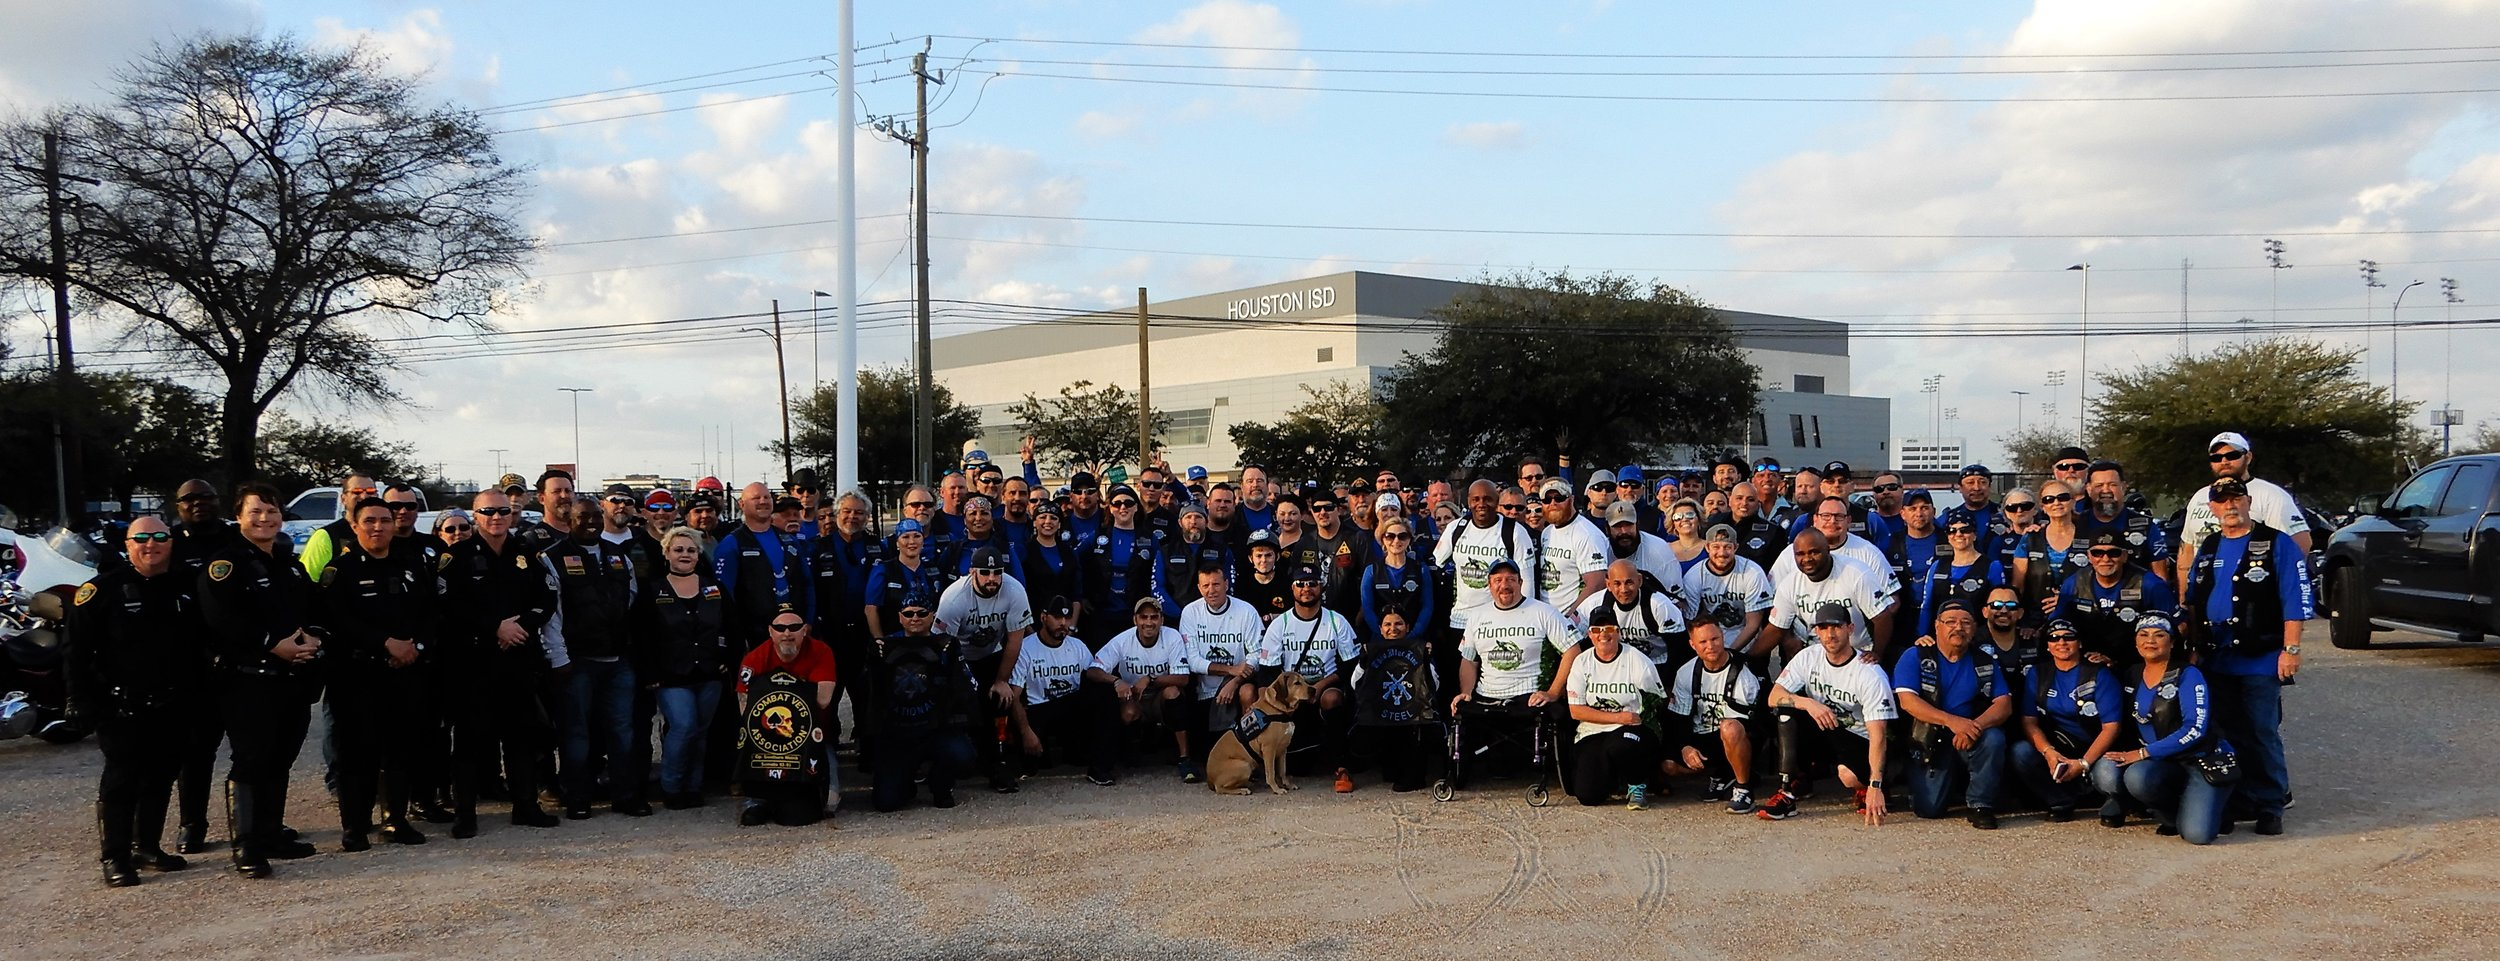 Houston PD, Combat Veterans Motorcycle Association, Wounded Warriors and Thin blue Line LE MC.